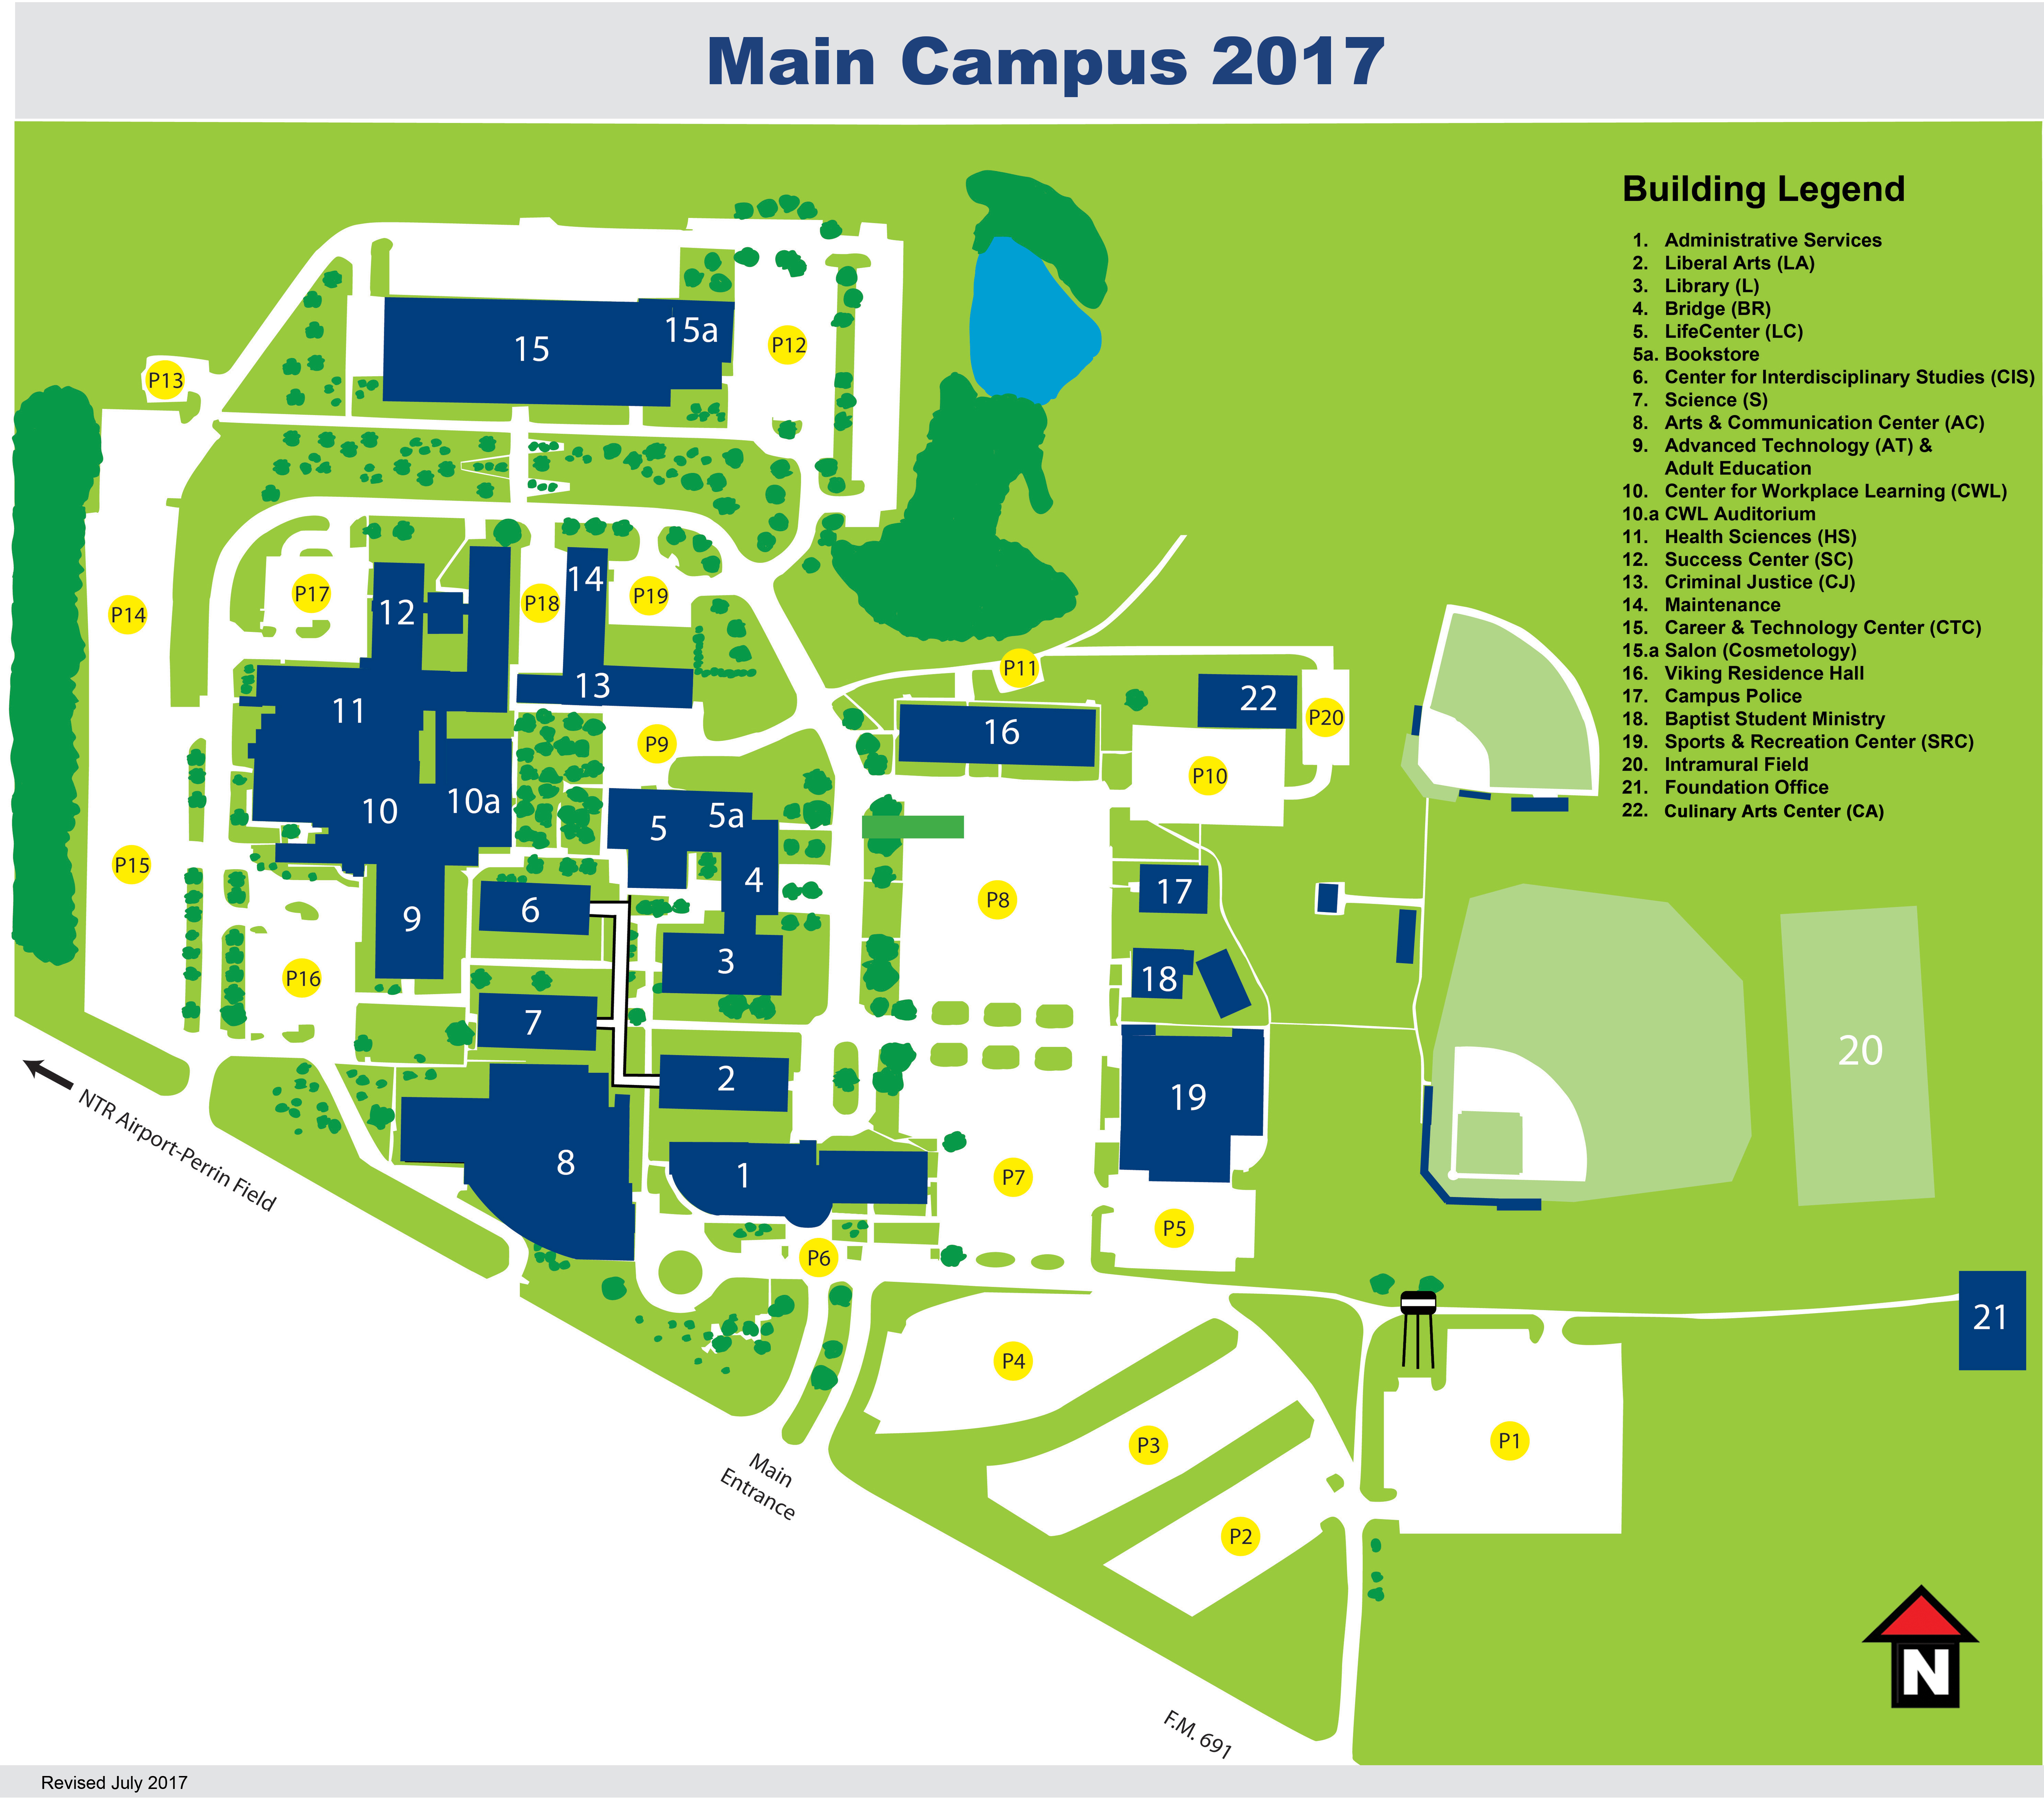 South Texas College Campus Map.Main Campus